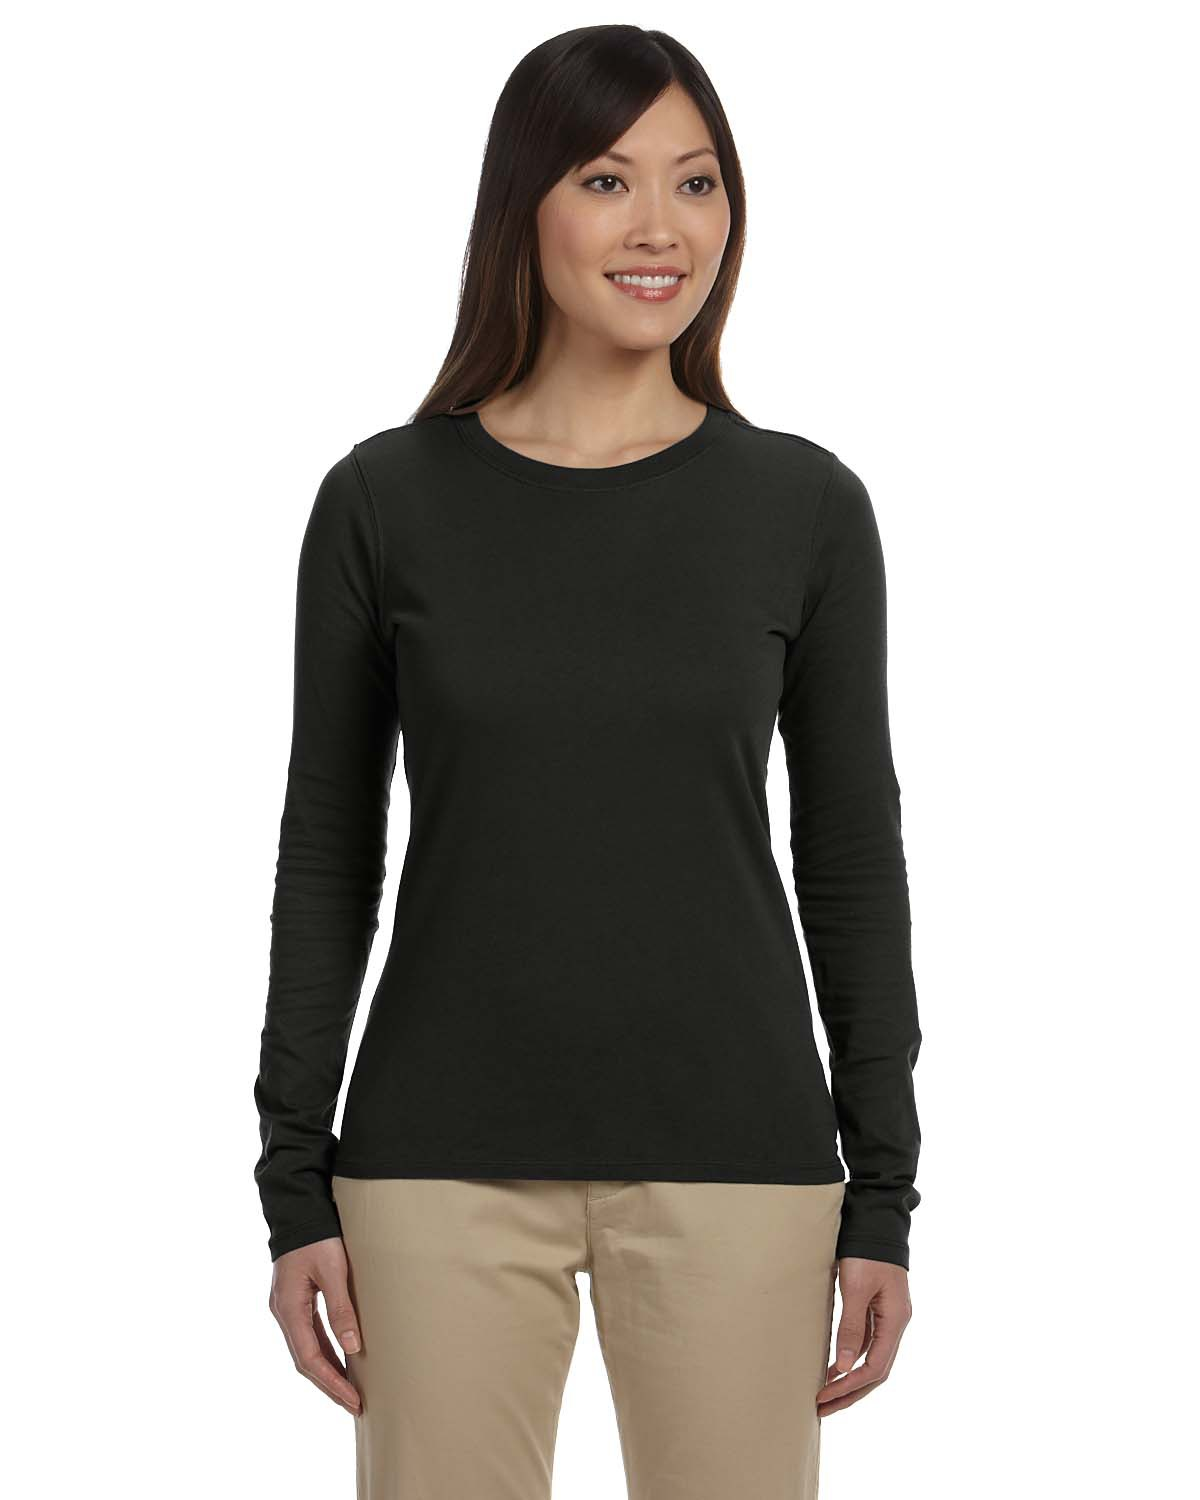 Ladies' 4.4 oz. 100% Organic Cotton Classic Long-Sleeve T-Shirt